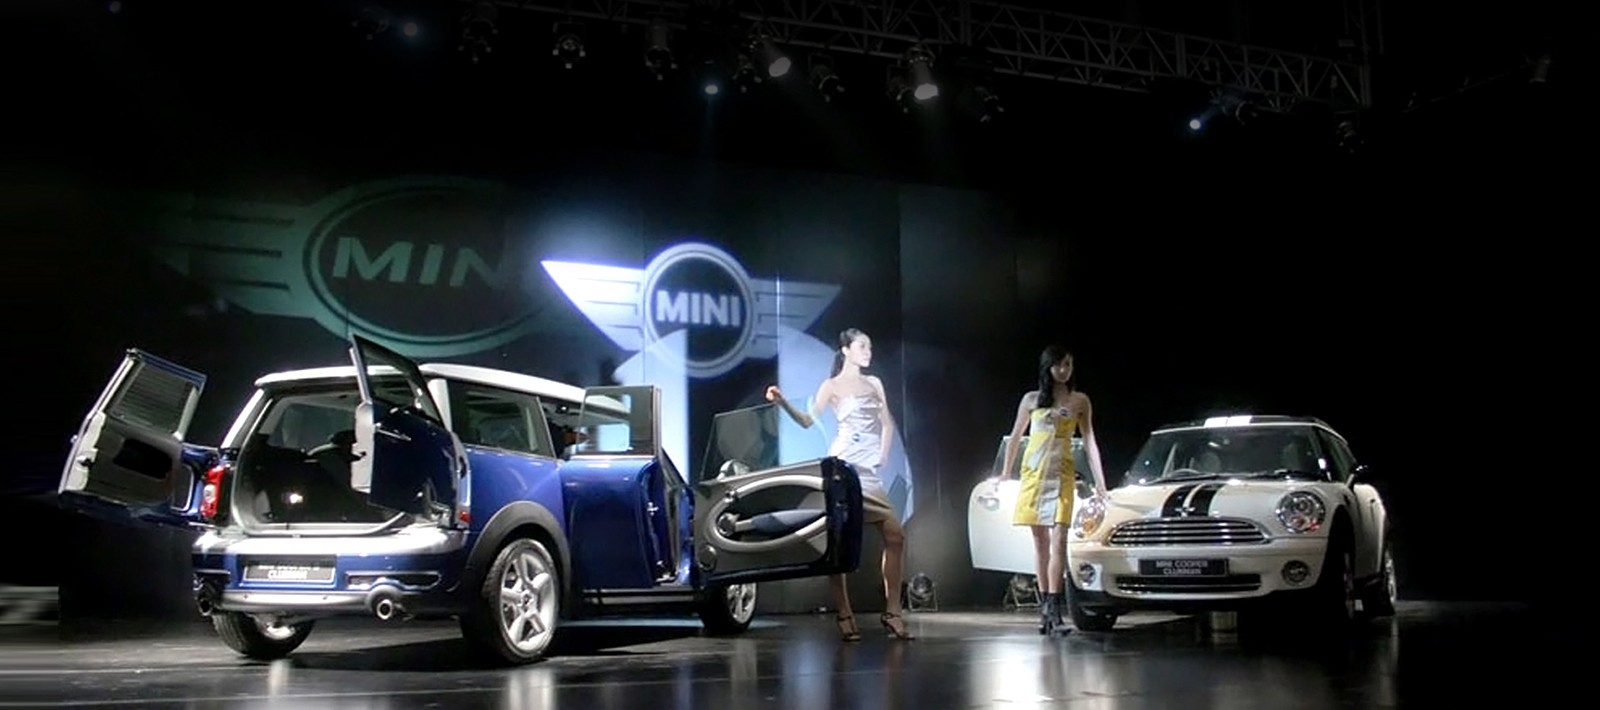 Mini clubman product launch